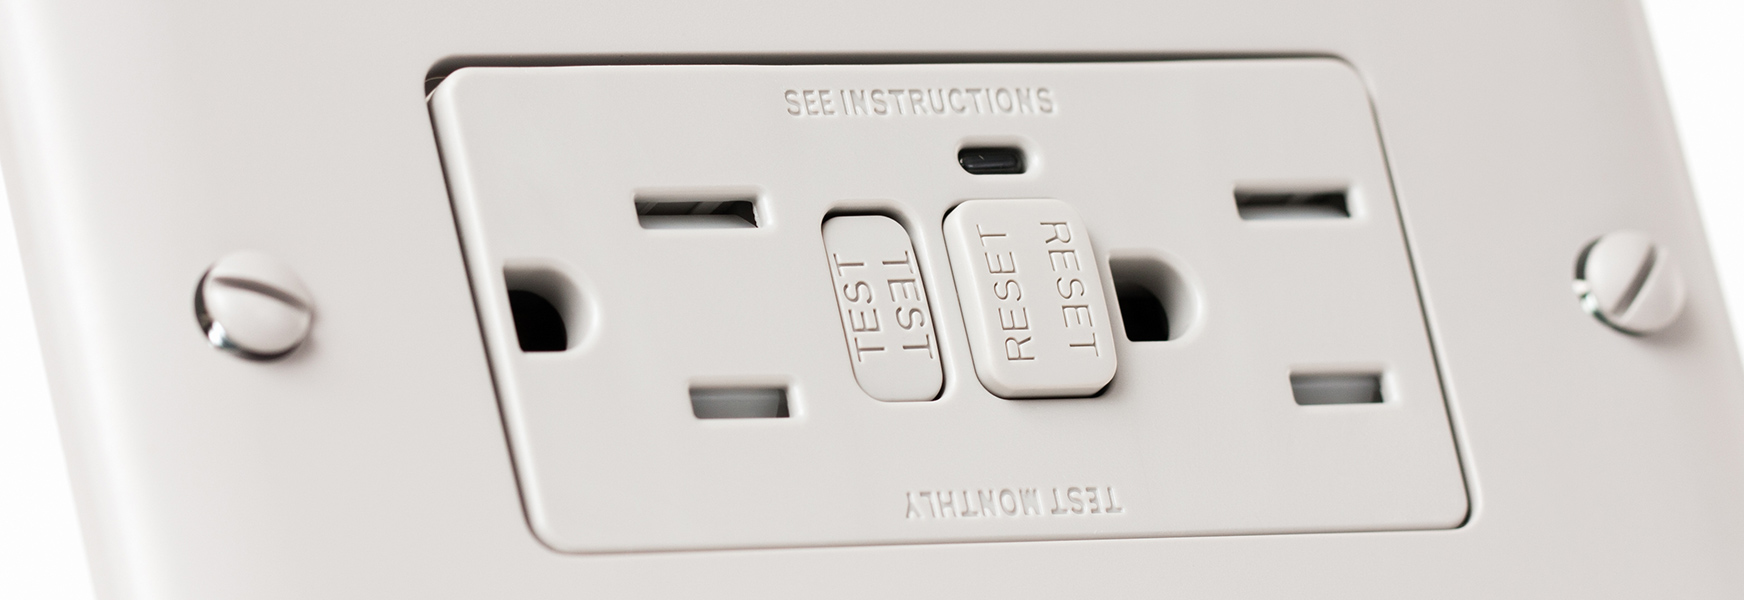 Gfci Great For Controlling Incidents Groundfault Circuit Interrupter Outlet Plug